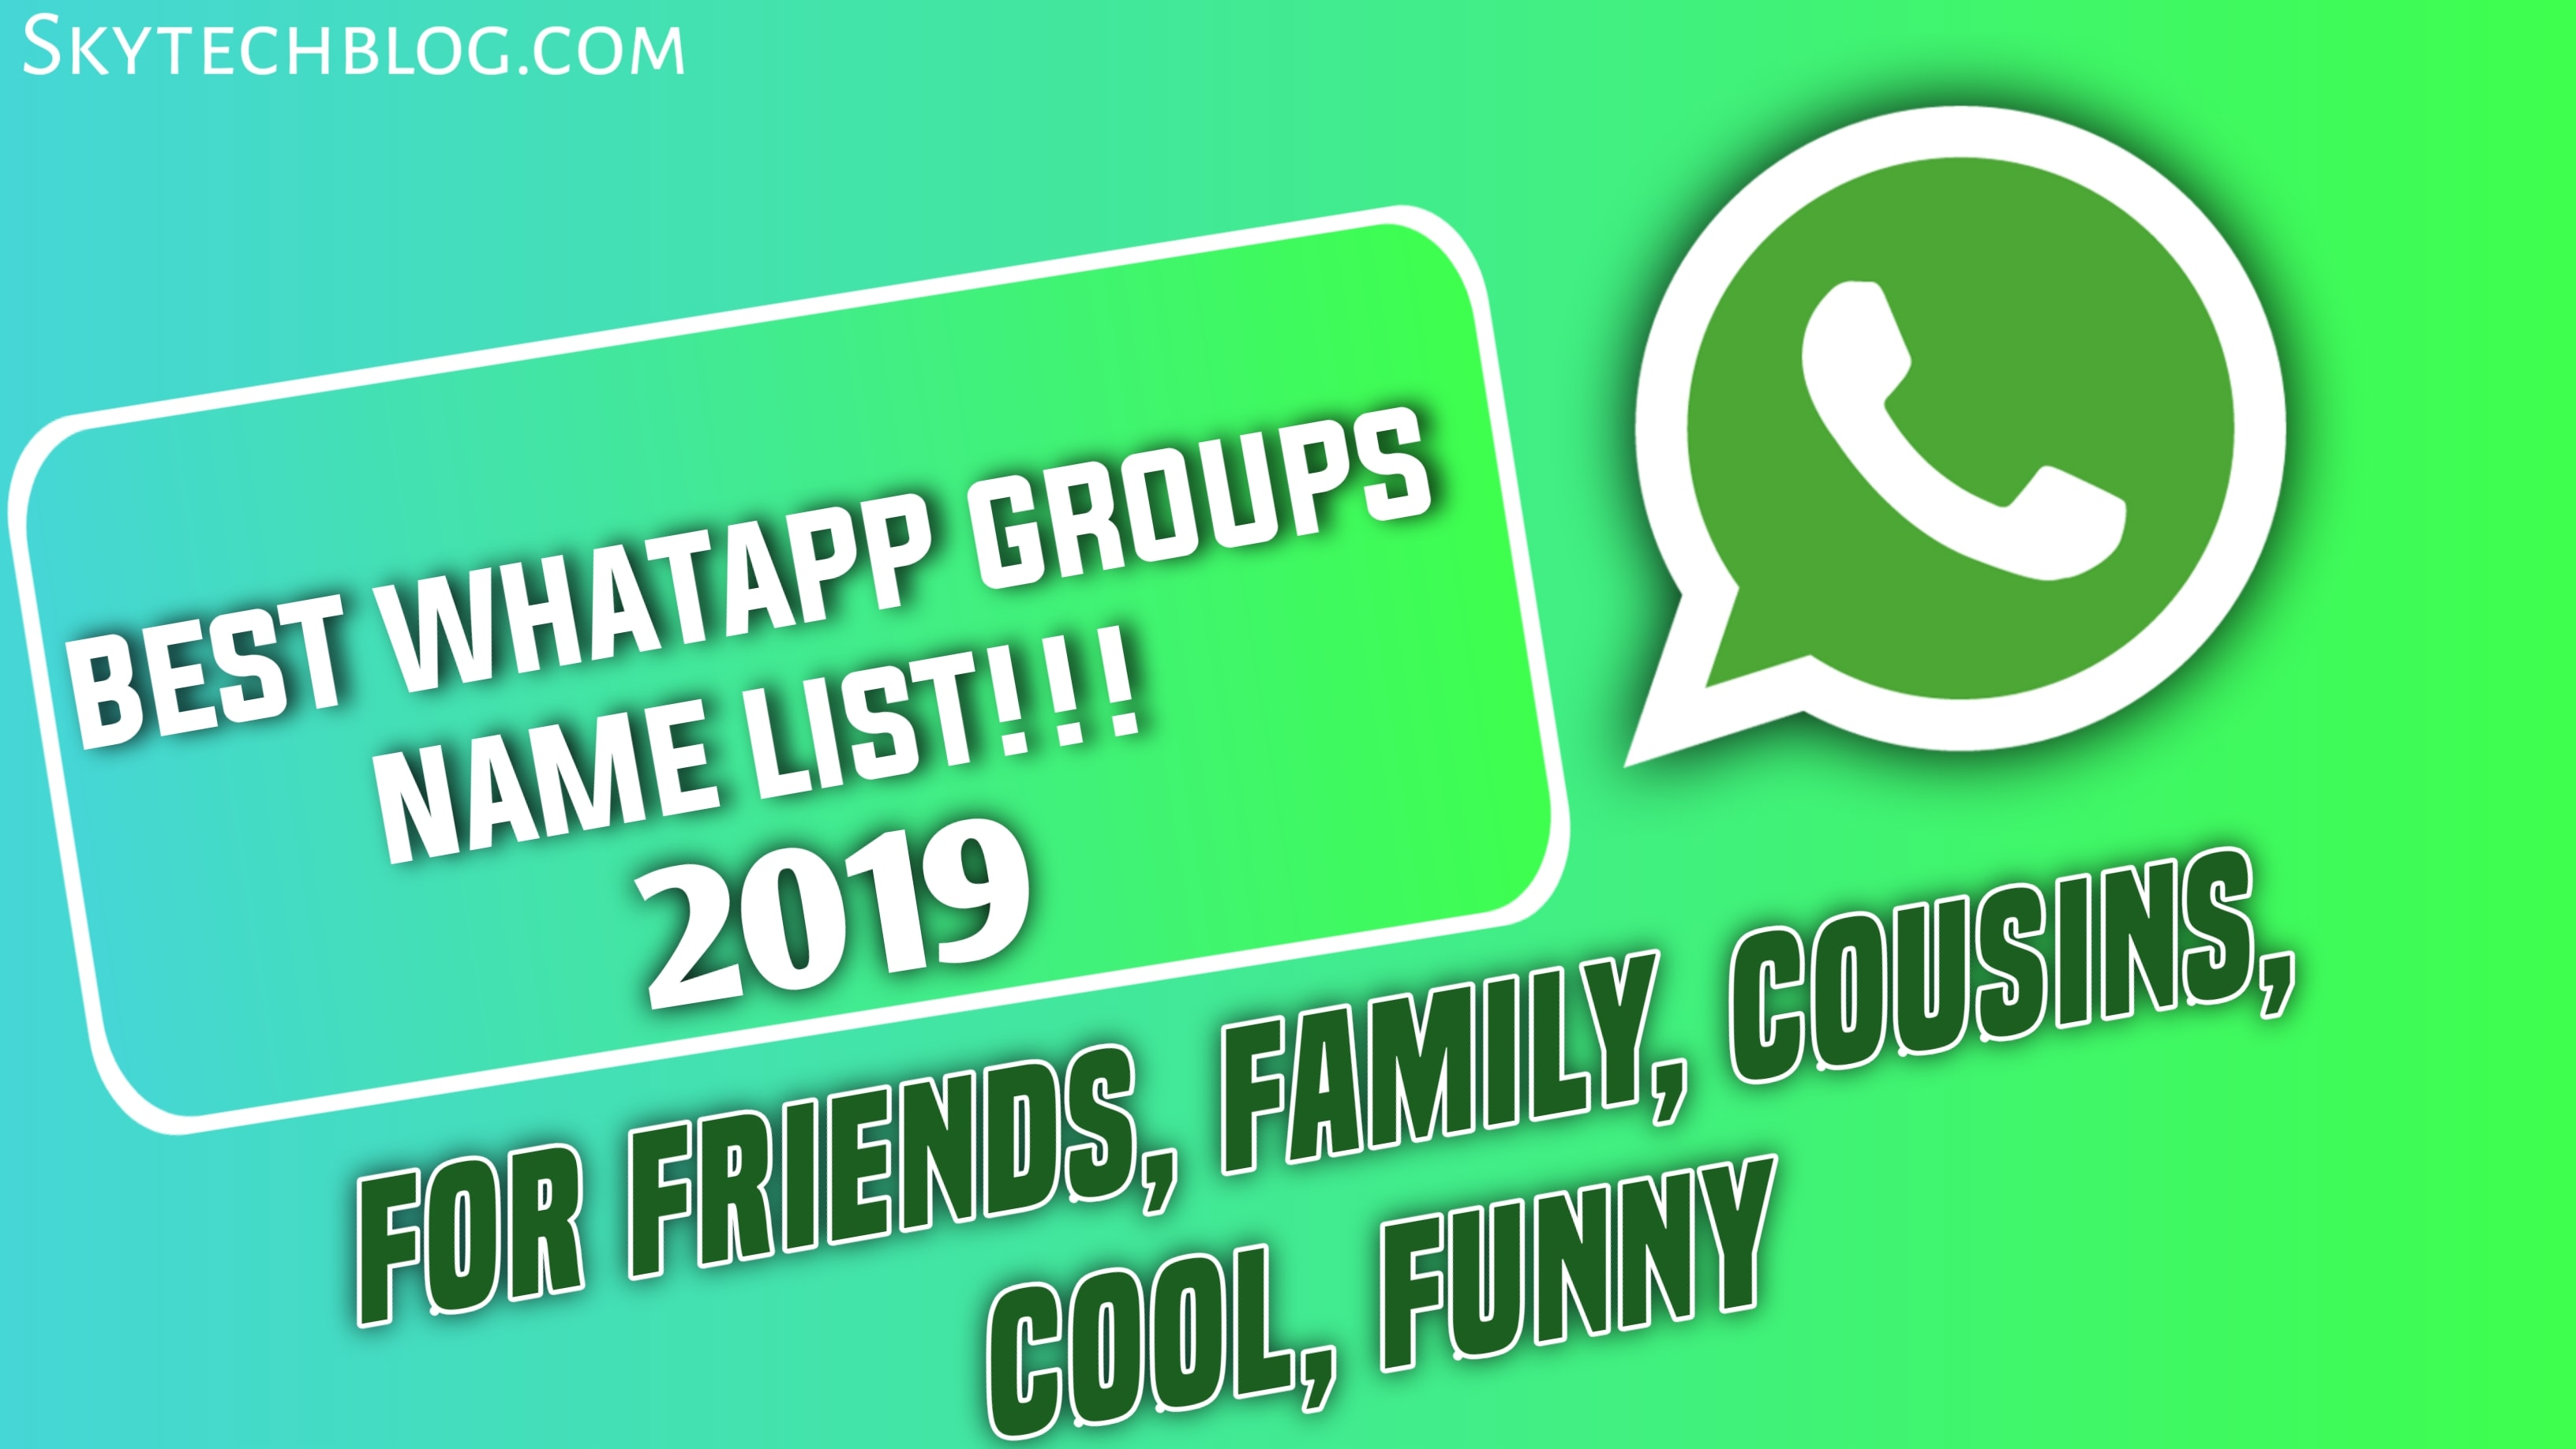 551 Best Whatsapp Group Name List 2019 For Friends Family - cool names for boys 2019